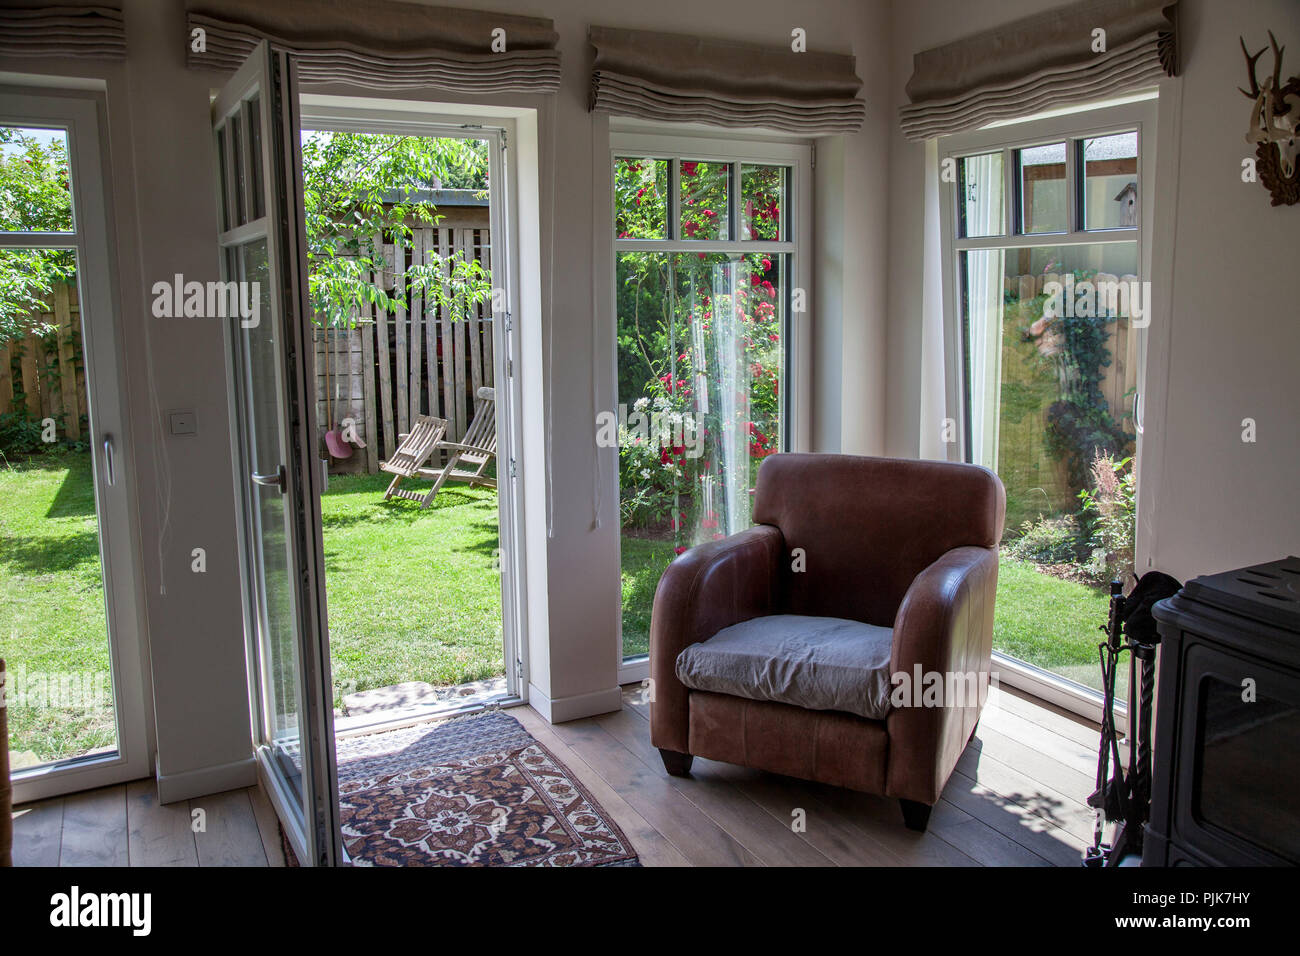 Cosy room with access to garden - Stock Image